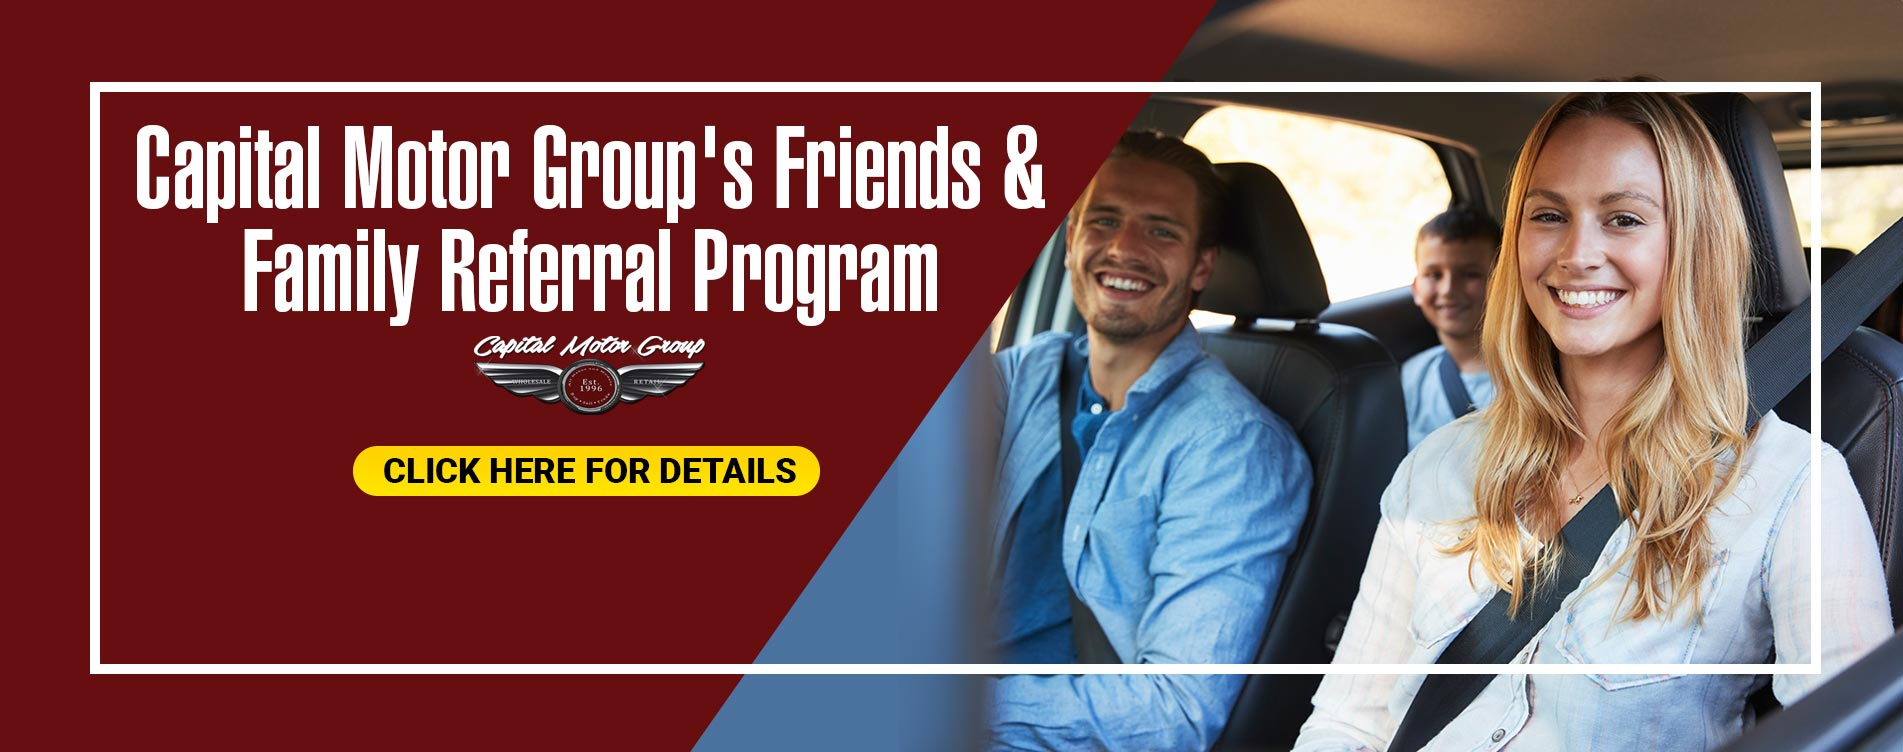 Friends & Family by Capital Motor Group